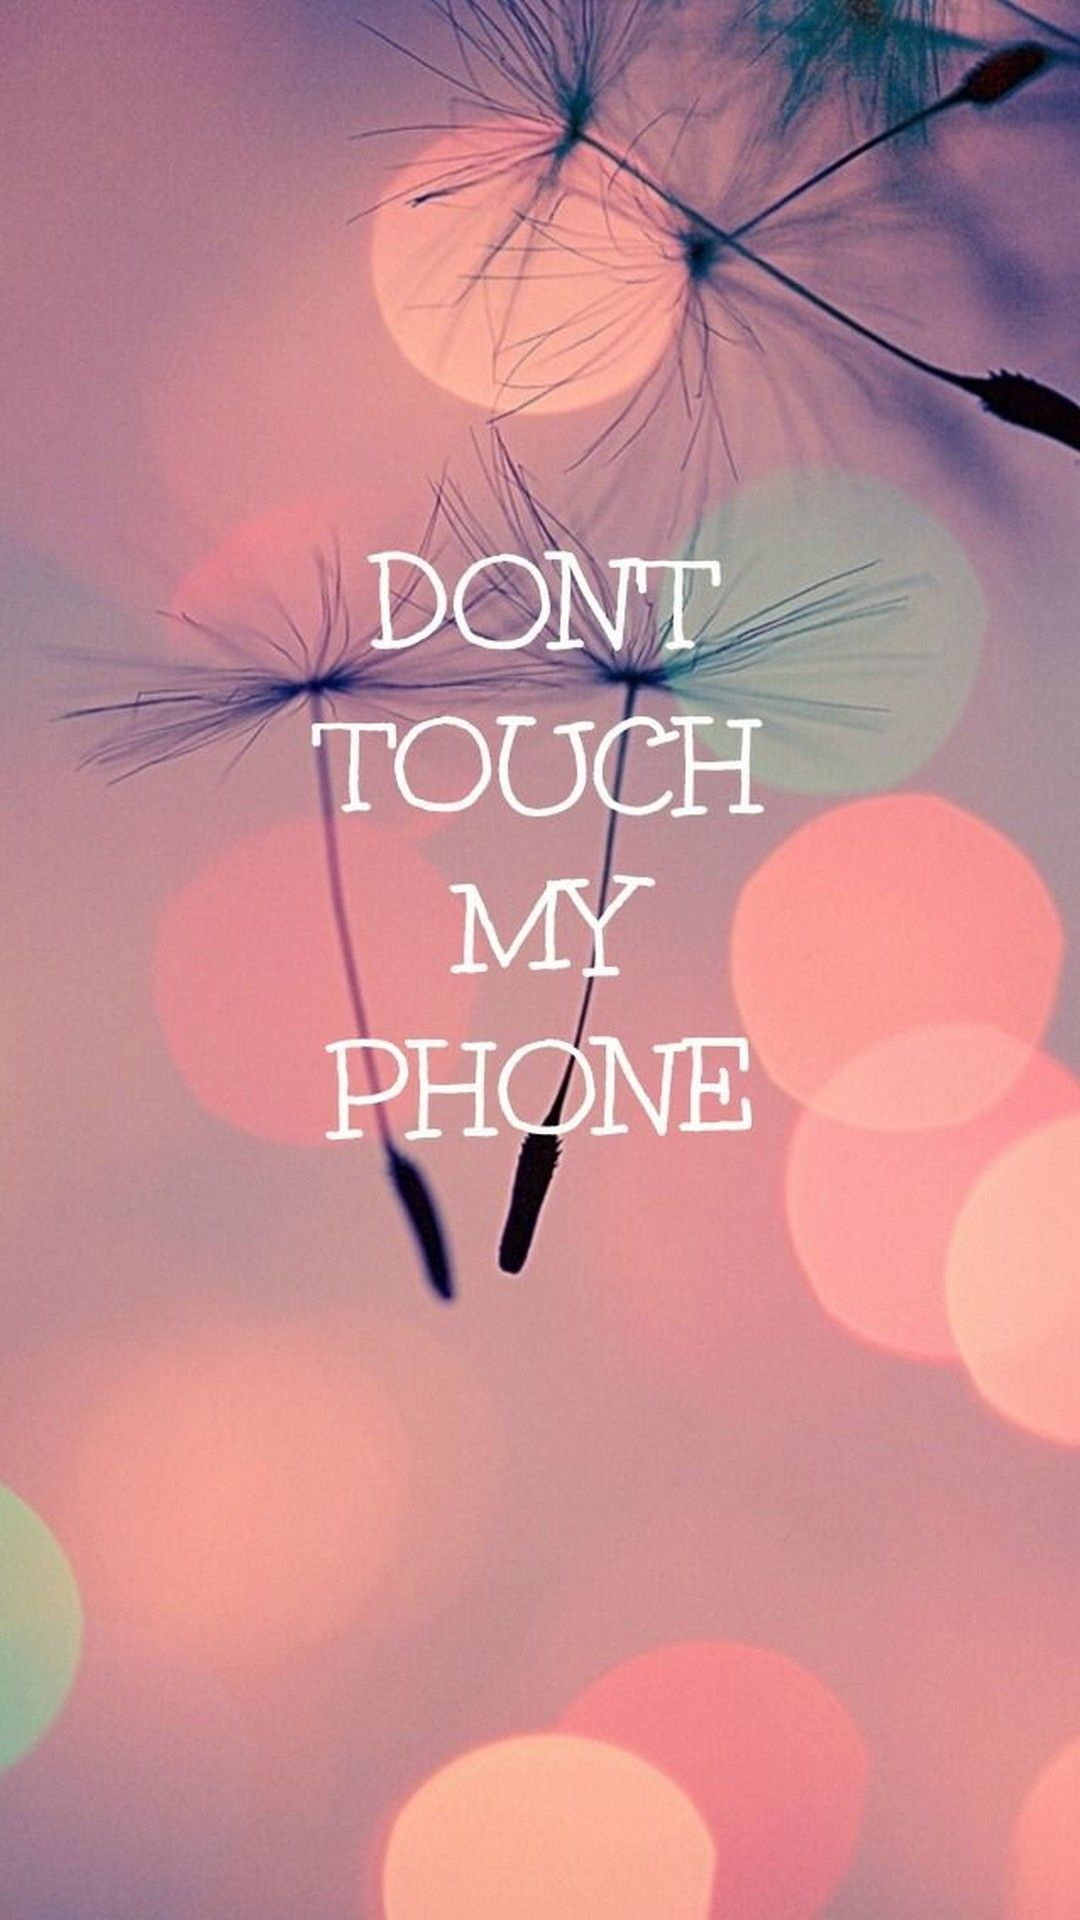 Cute Girly Wallpaper Dont Touch My Phone   Dont Touch My Phone 1080x1920